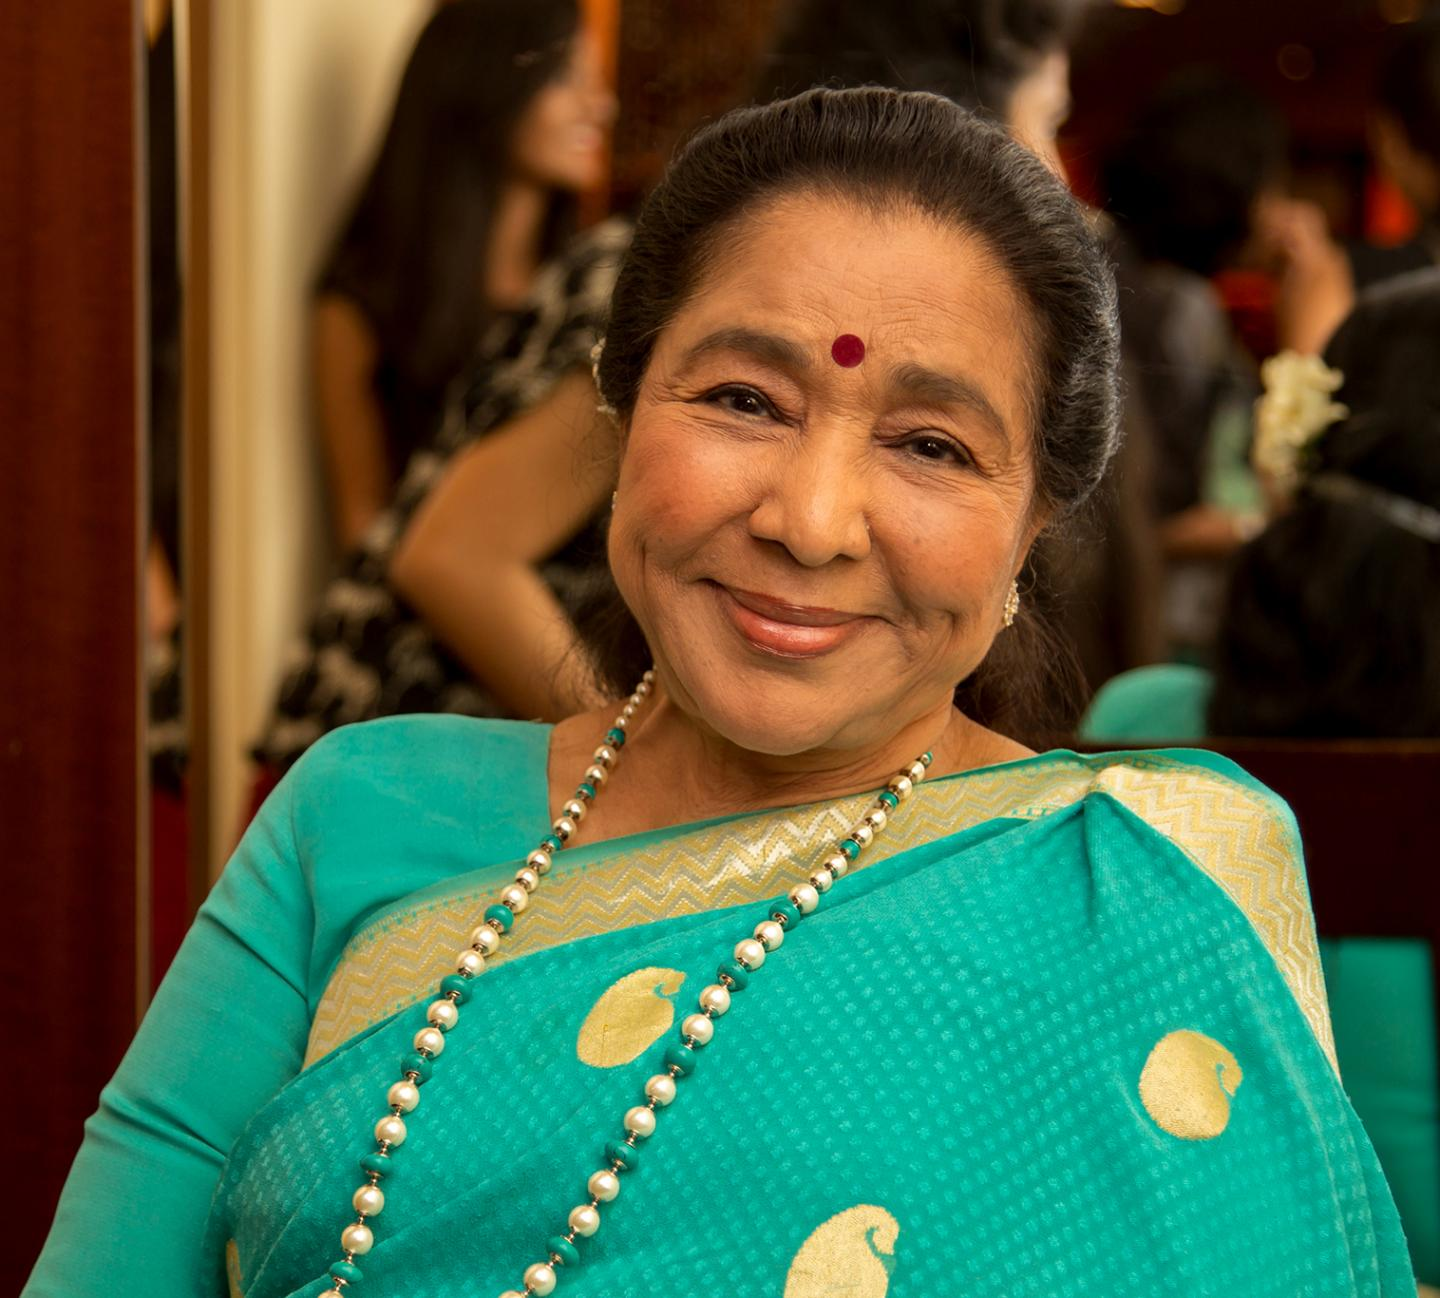 Asha Bhosle, 2015. Courtesy: Wikimedia Commons